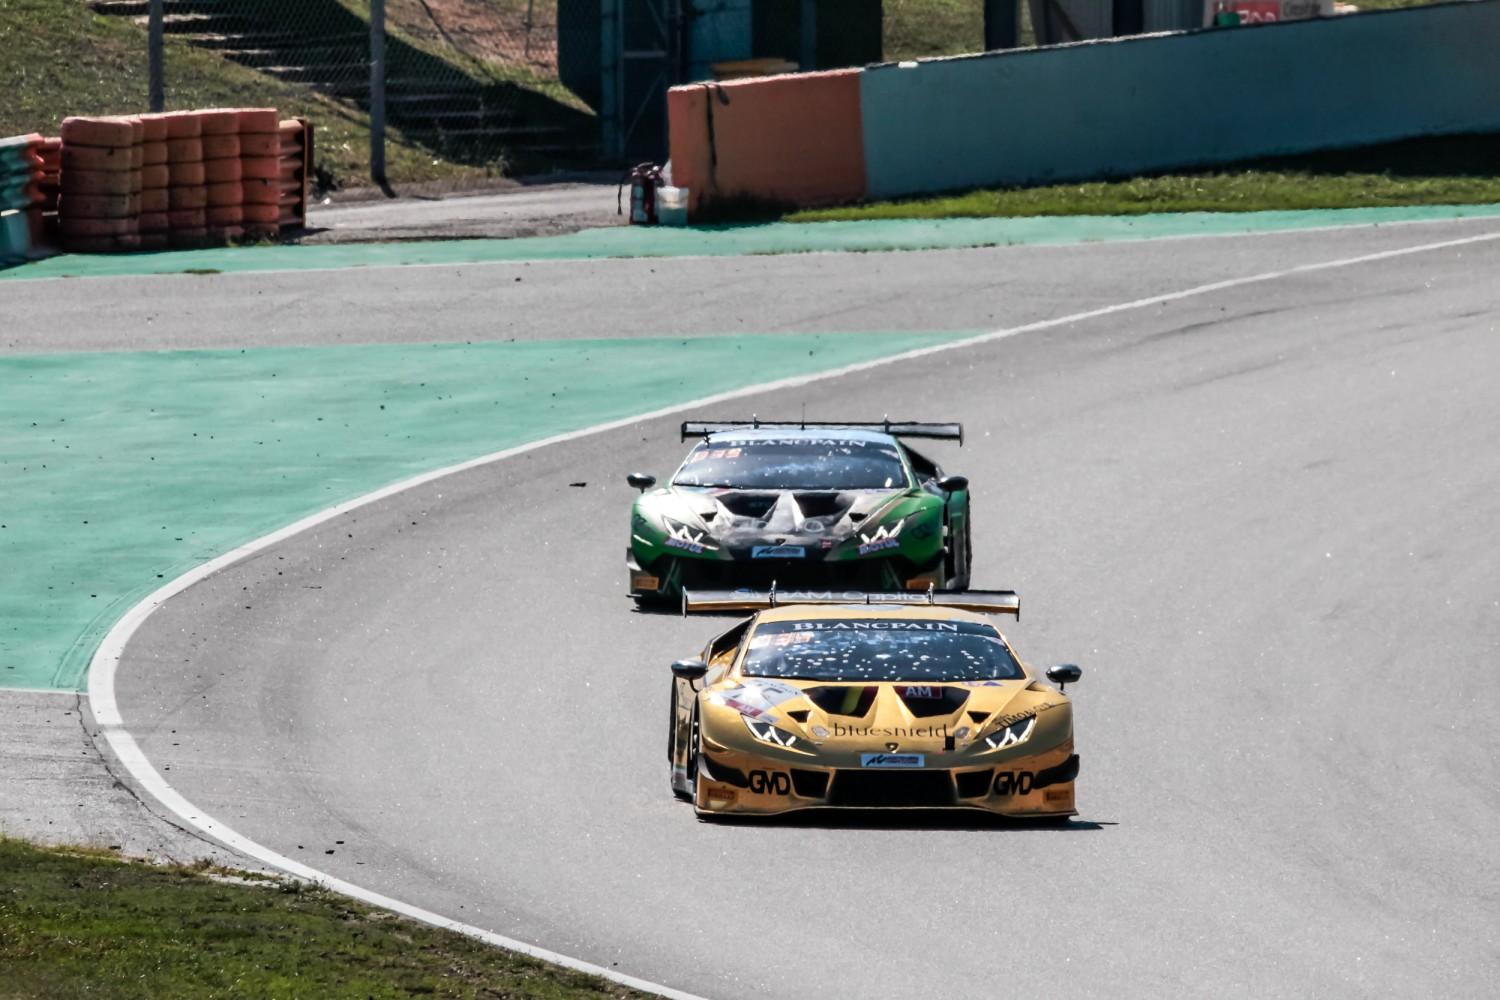 #15 Boutsen Ginion BEL Lamborghini Huracan GT3 2019 Claude-Yves Gosselin FRA Marc Rostan FRA Renaud Kuppens BEL Am Cup, Race  | SRO / Patrick Hecq Photography